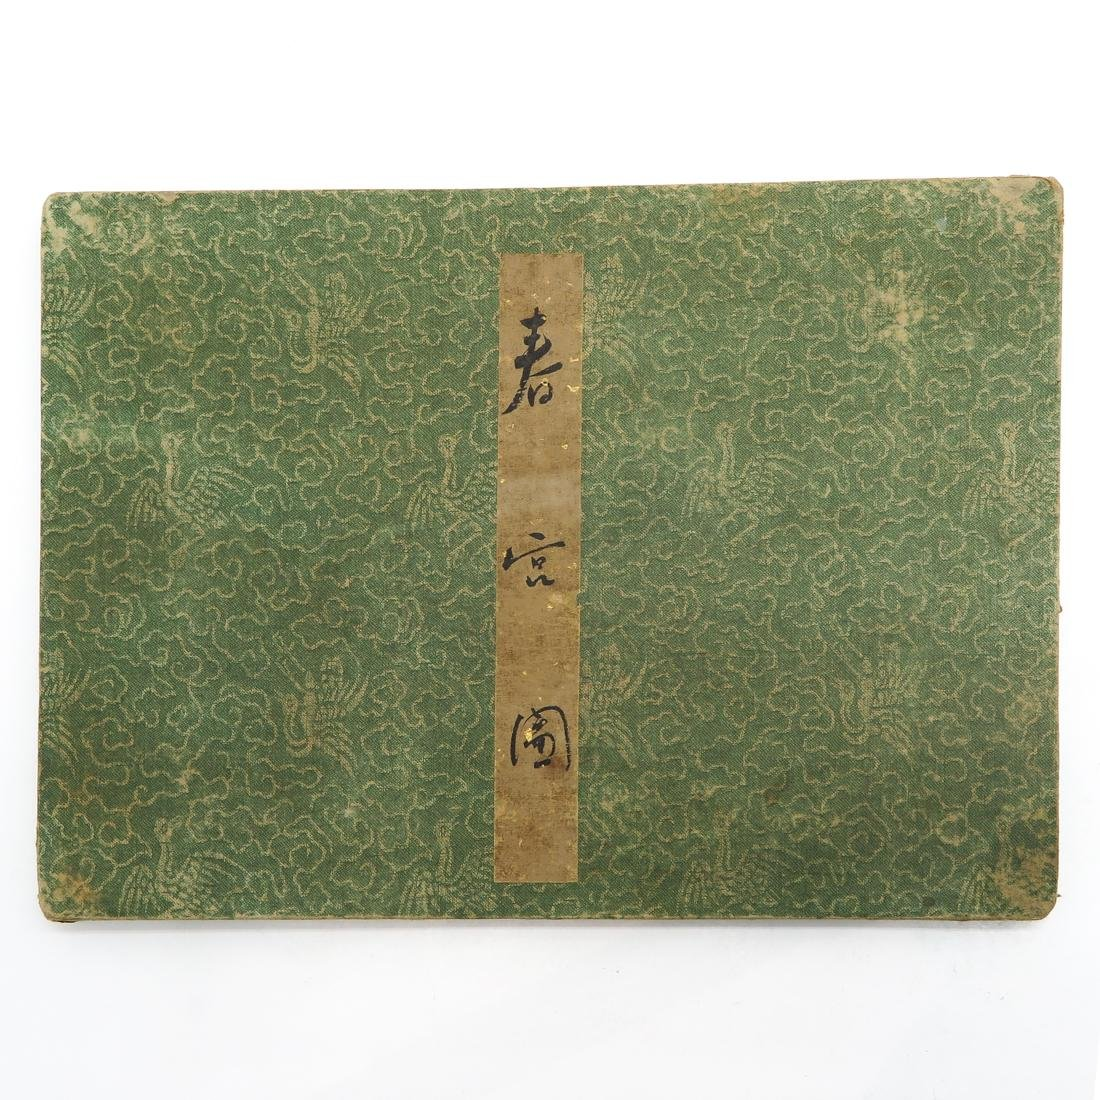 Book of Chinese Erotic Scenes